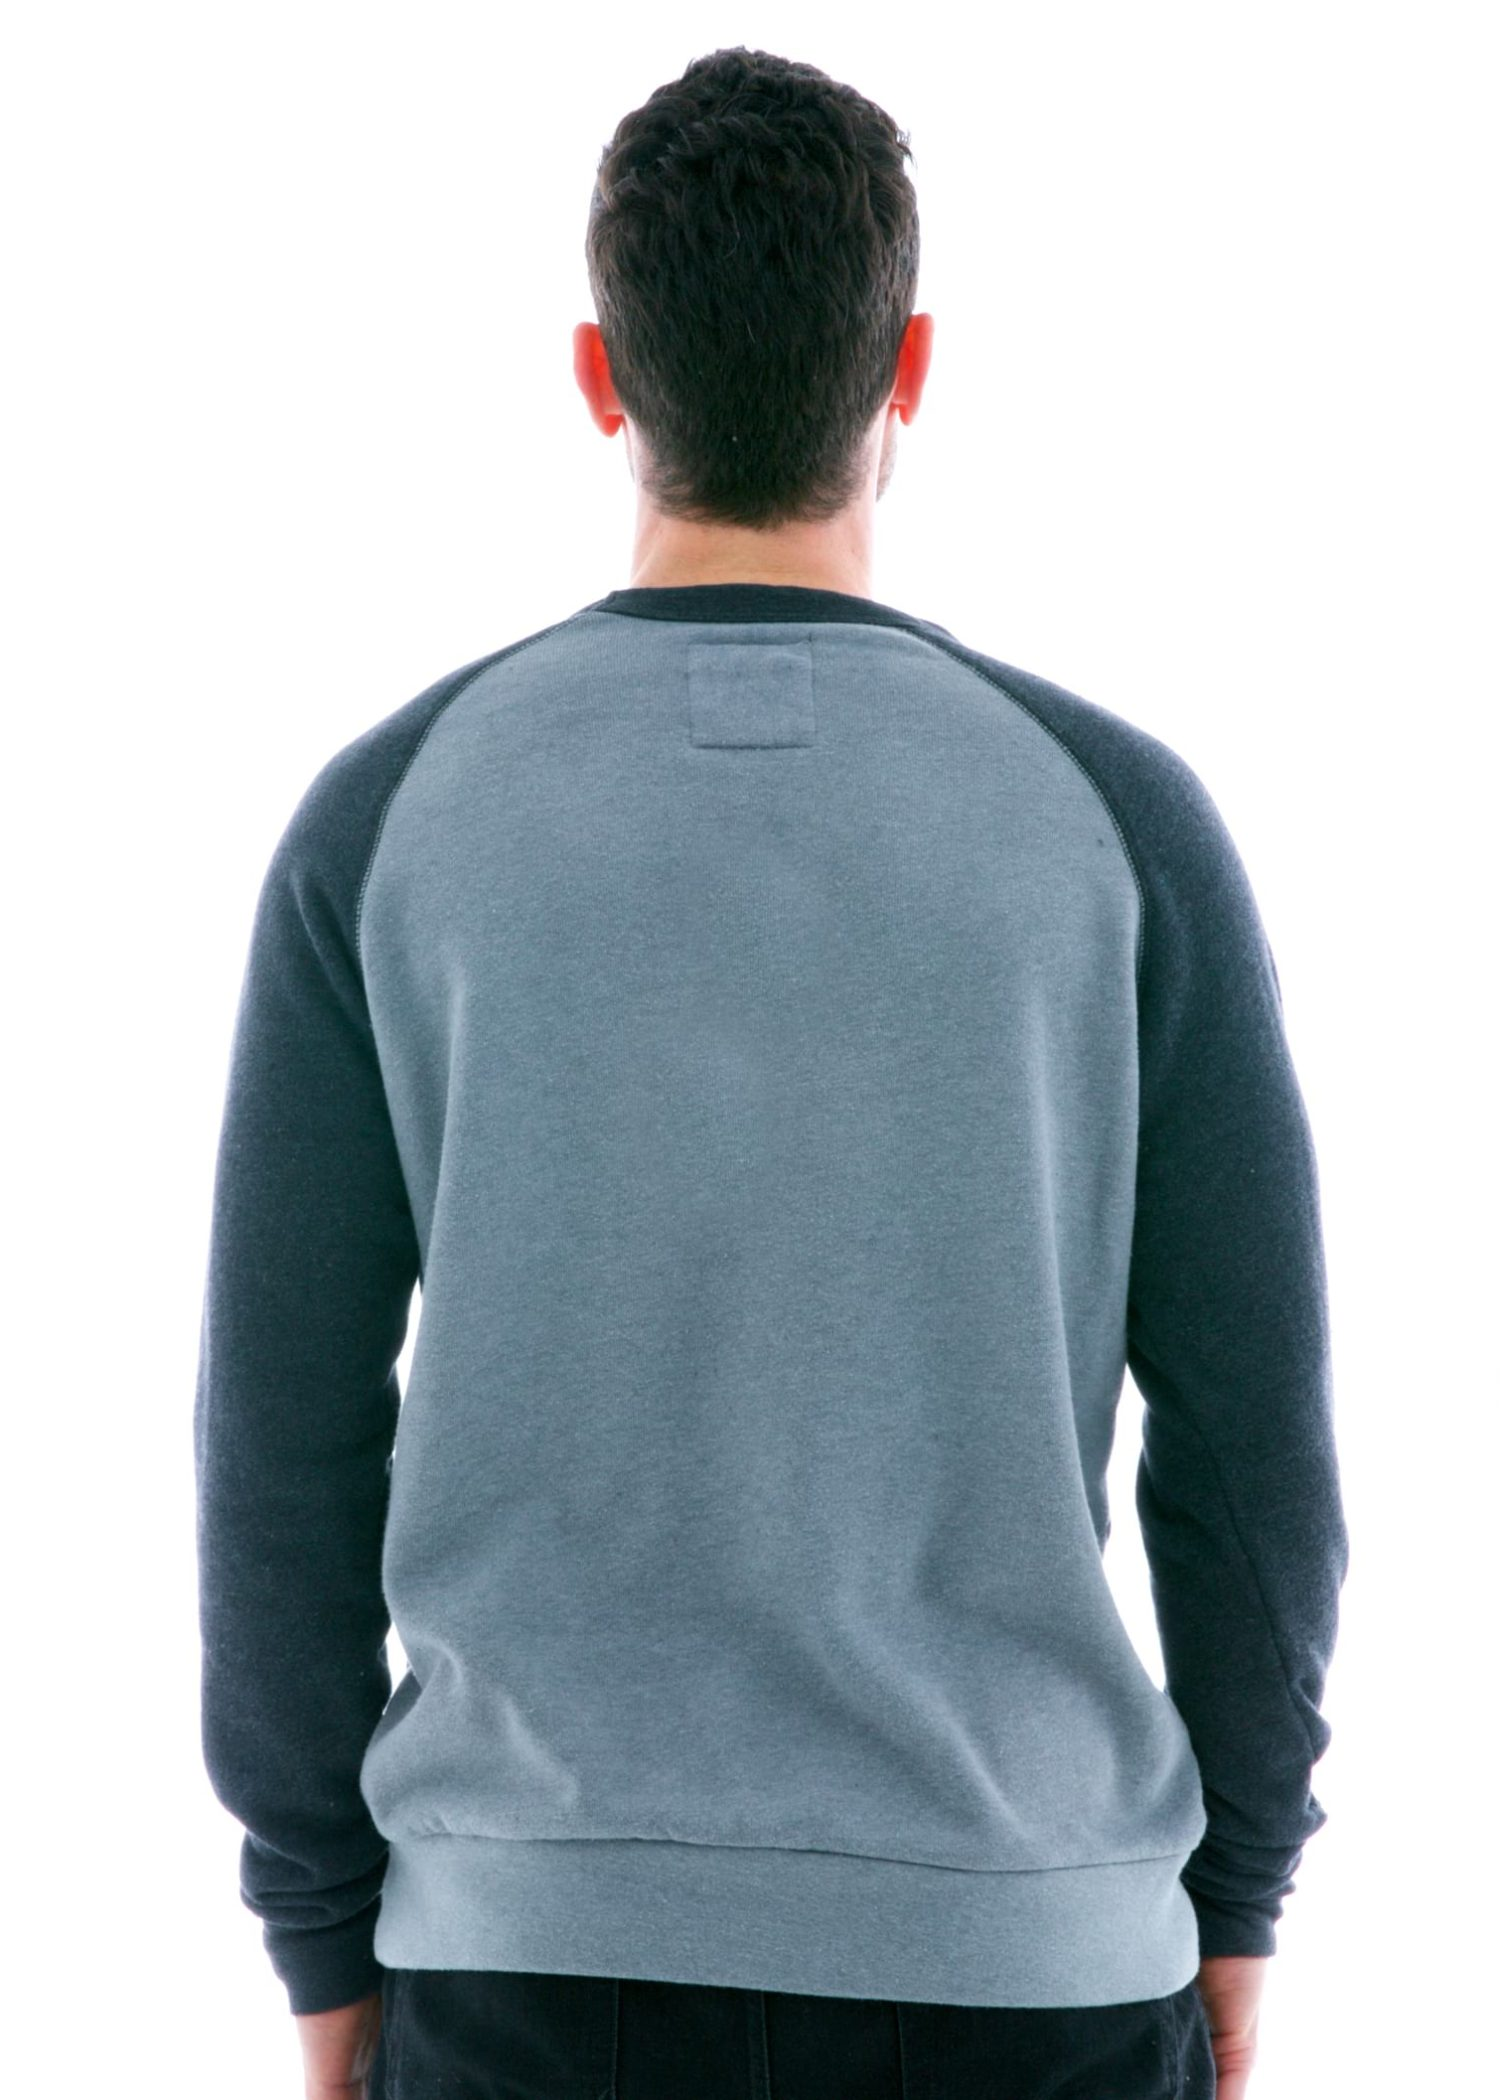 Men's Contrast Sleeve Old School Long Sleeve Raglan T-Shirt Back View